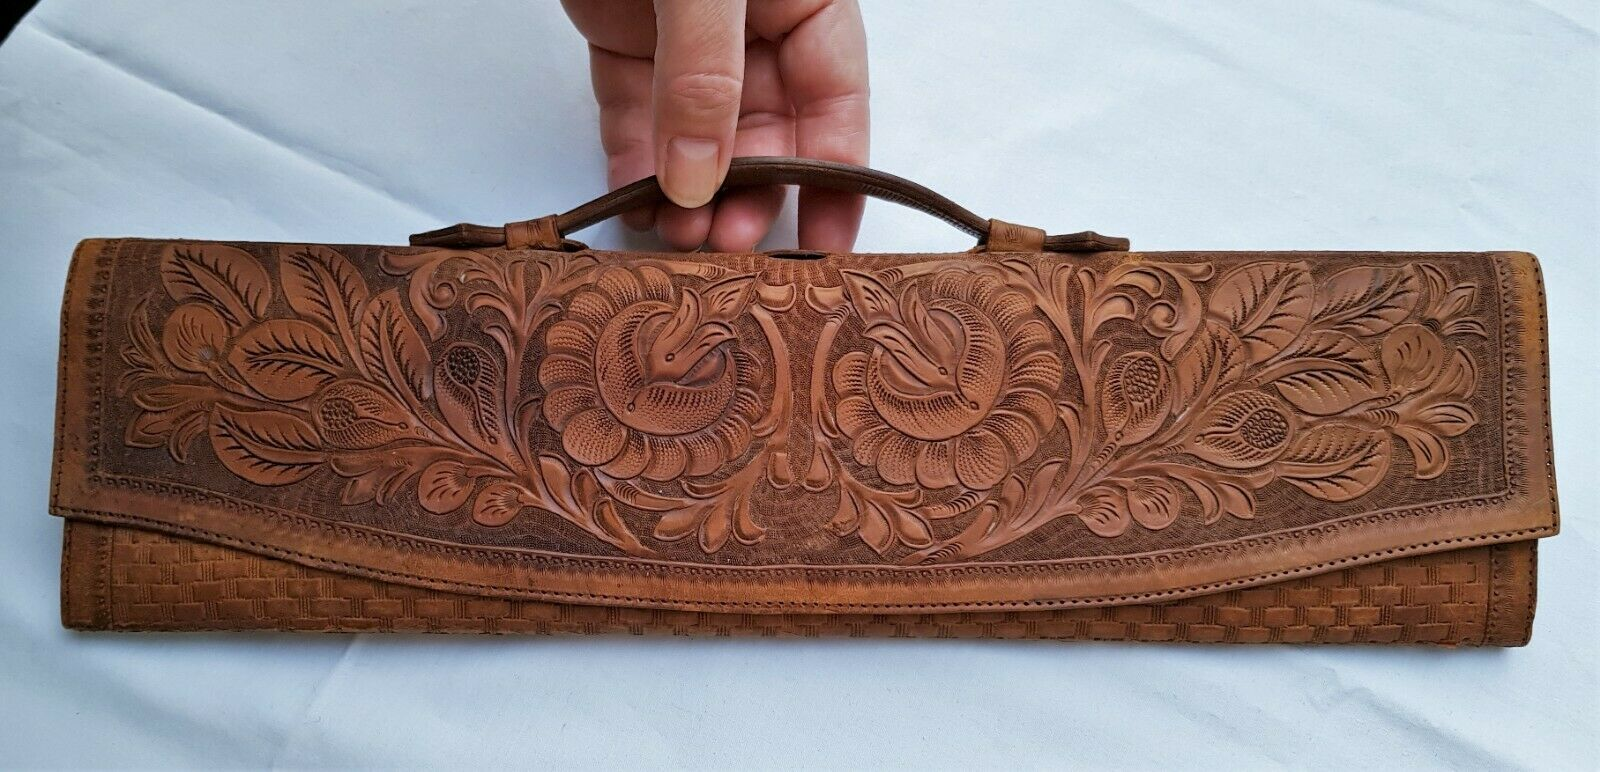 Antique tooled leather music sheet scroll foldable bag, case with notes